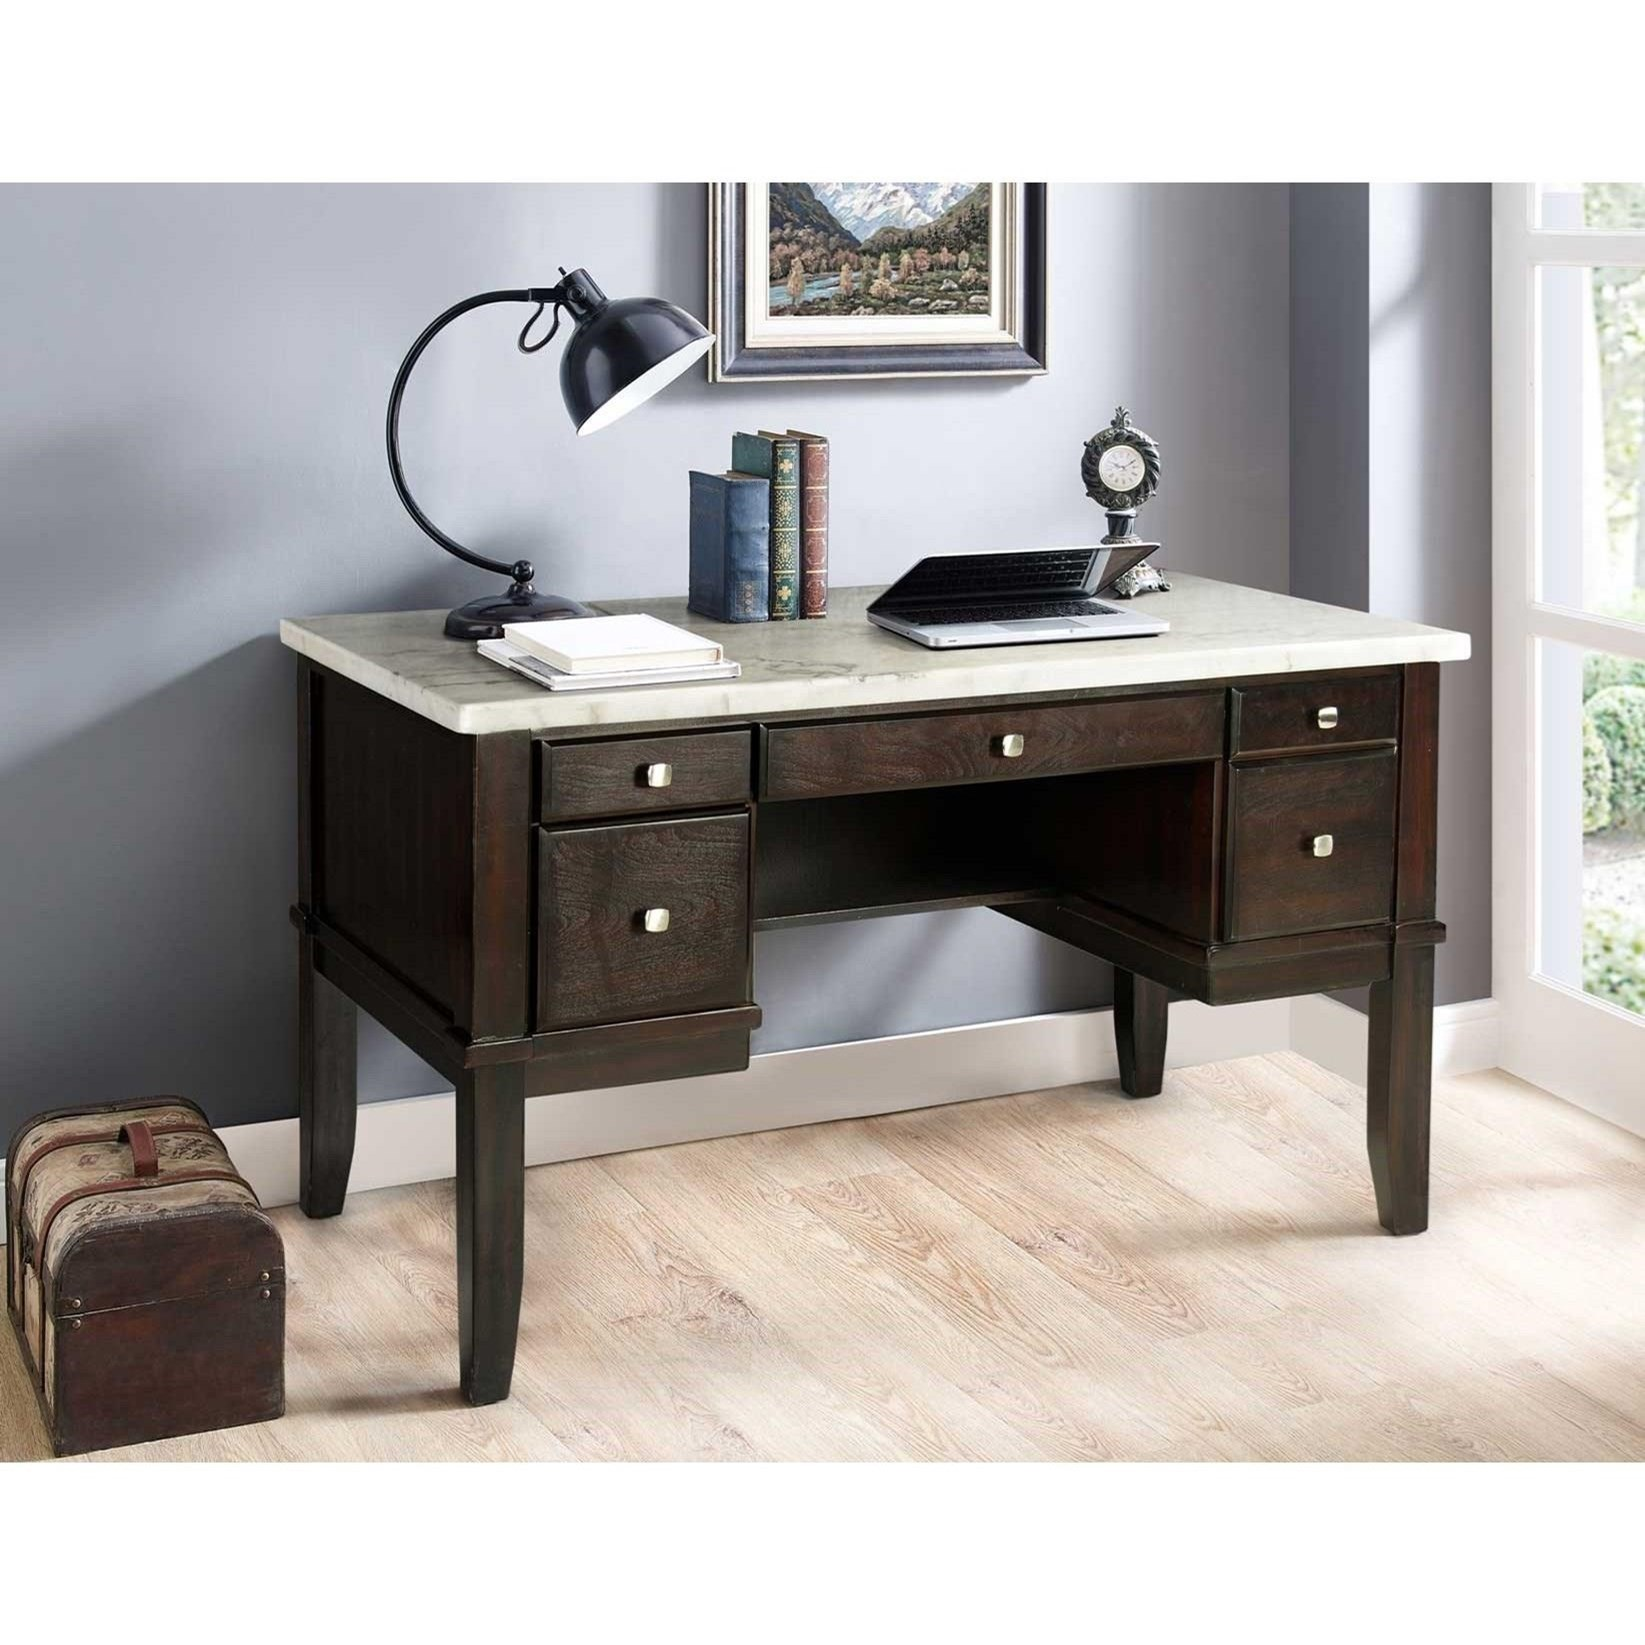 Francis Marble Top Desk by Steve Silver at Walker's Furniture